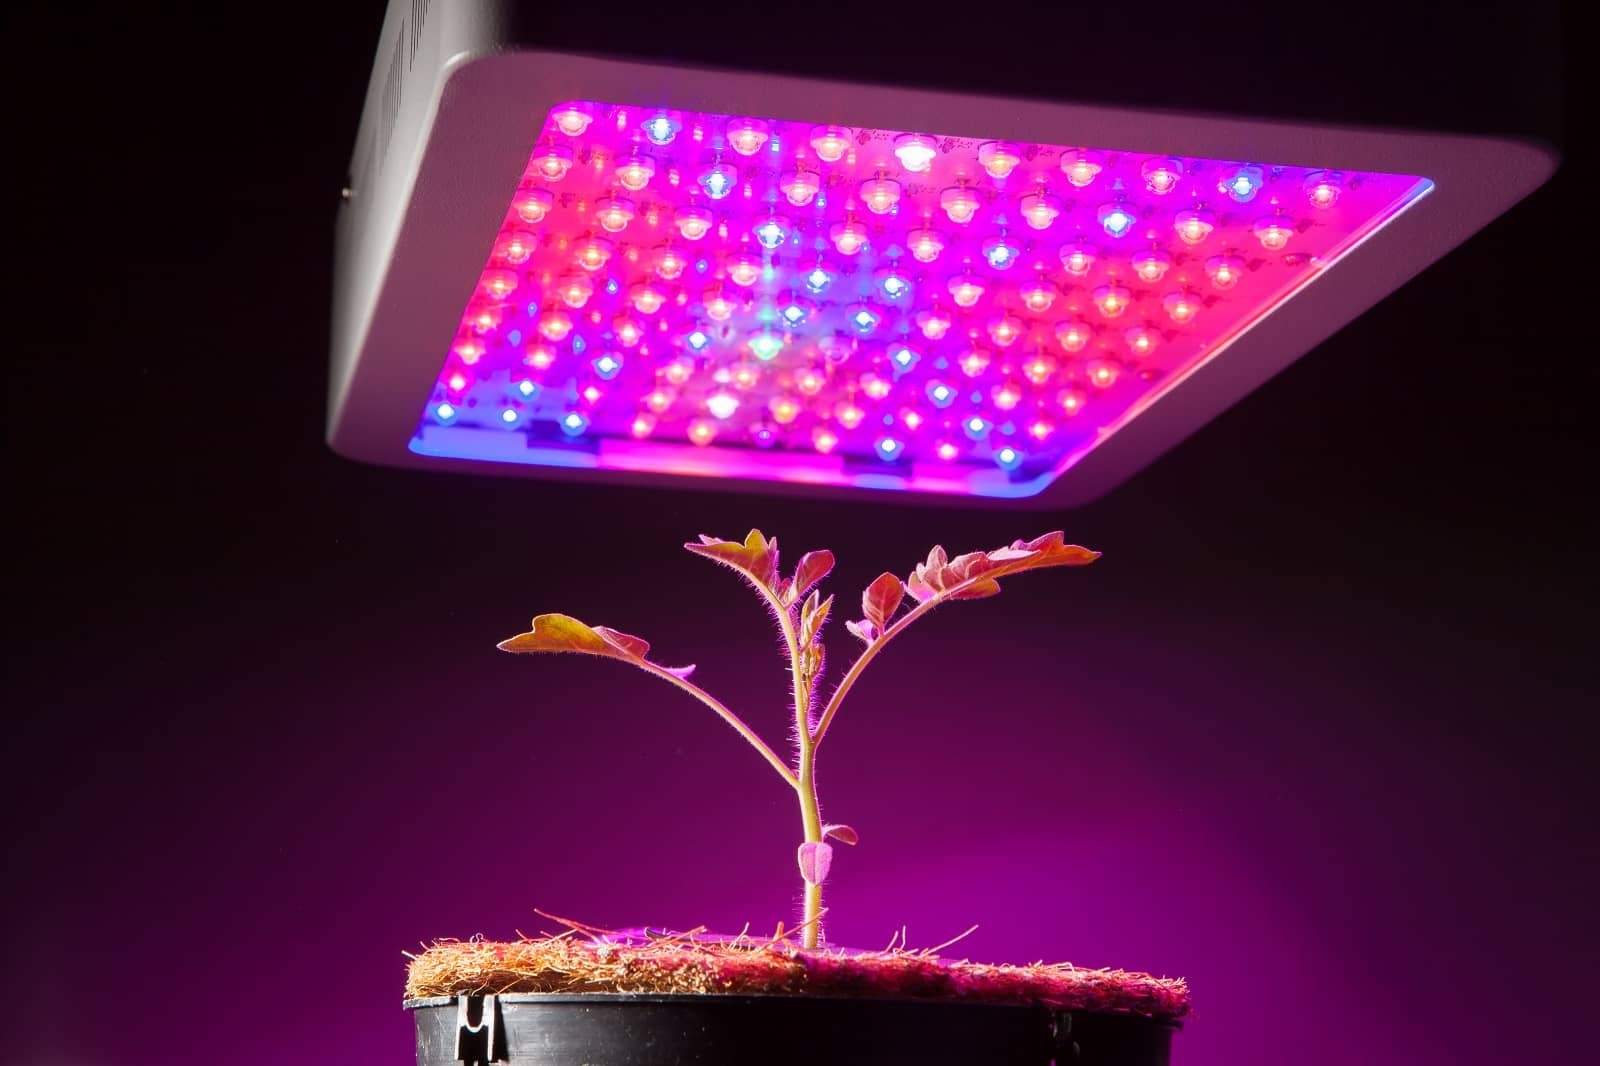 How to use the grow lights